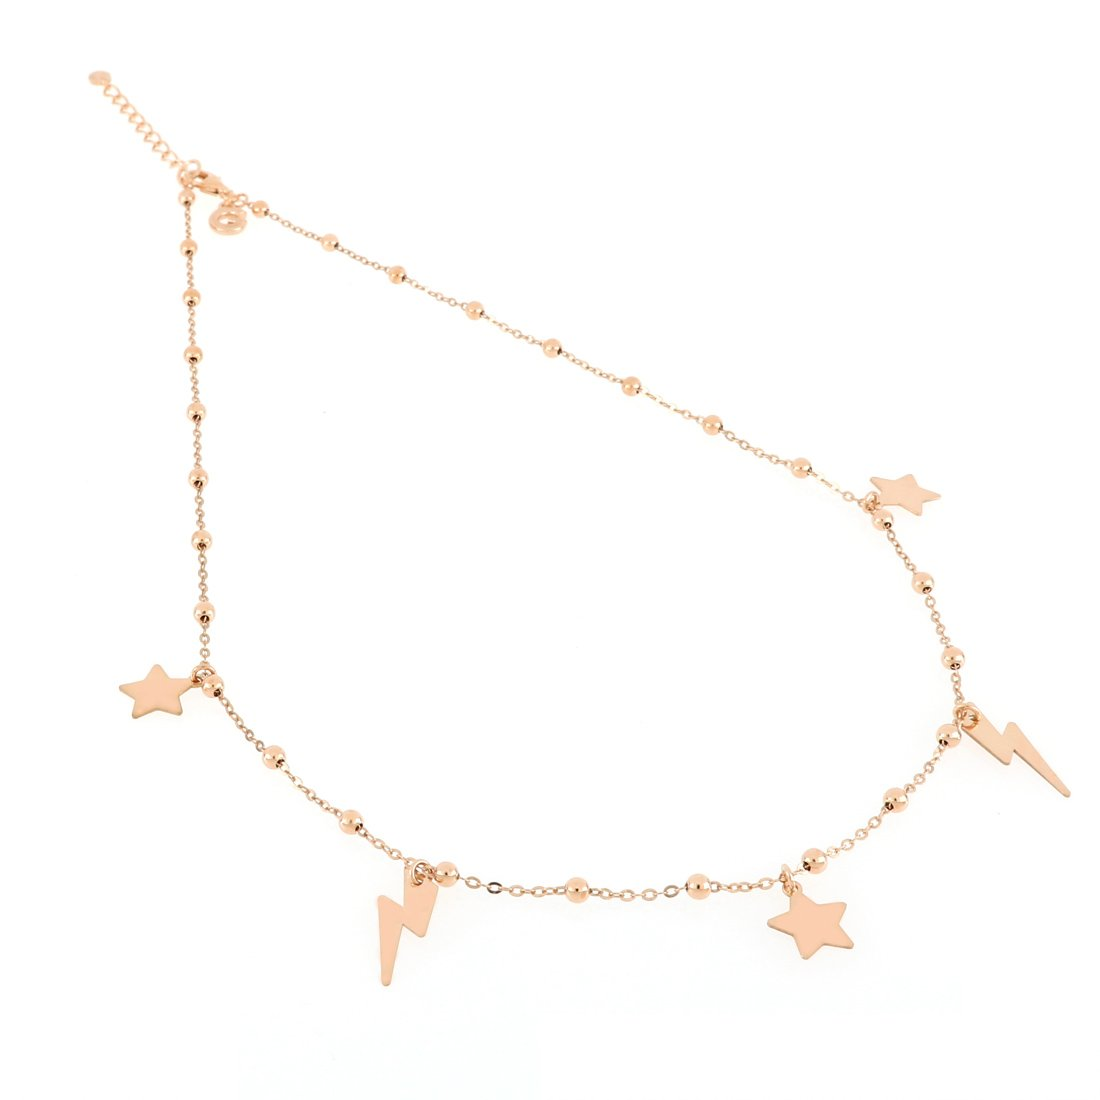 Collana in oro rosa con stelle e fulmini alternati